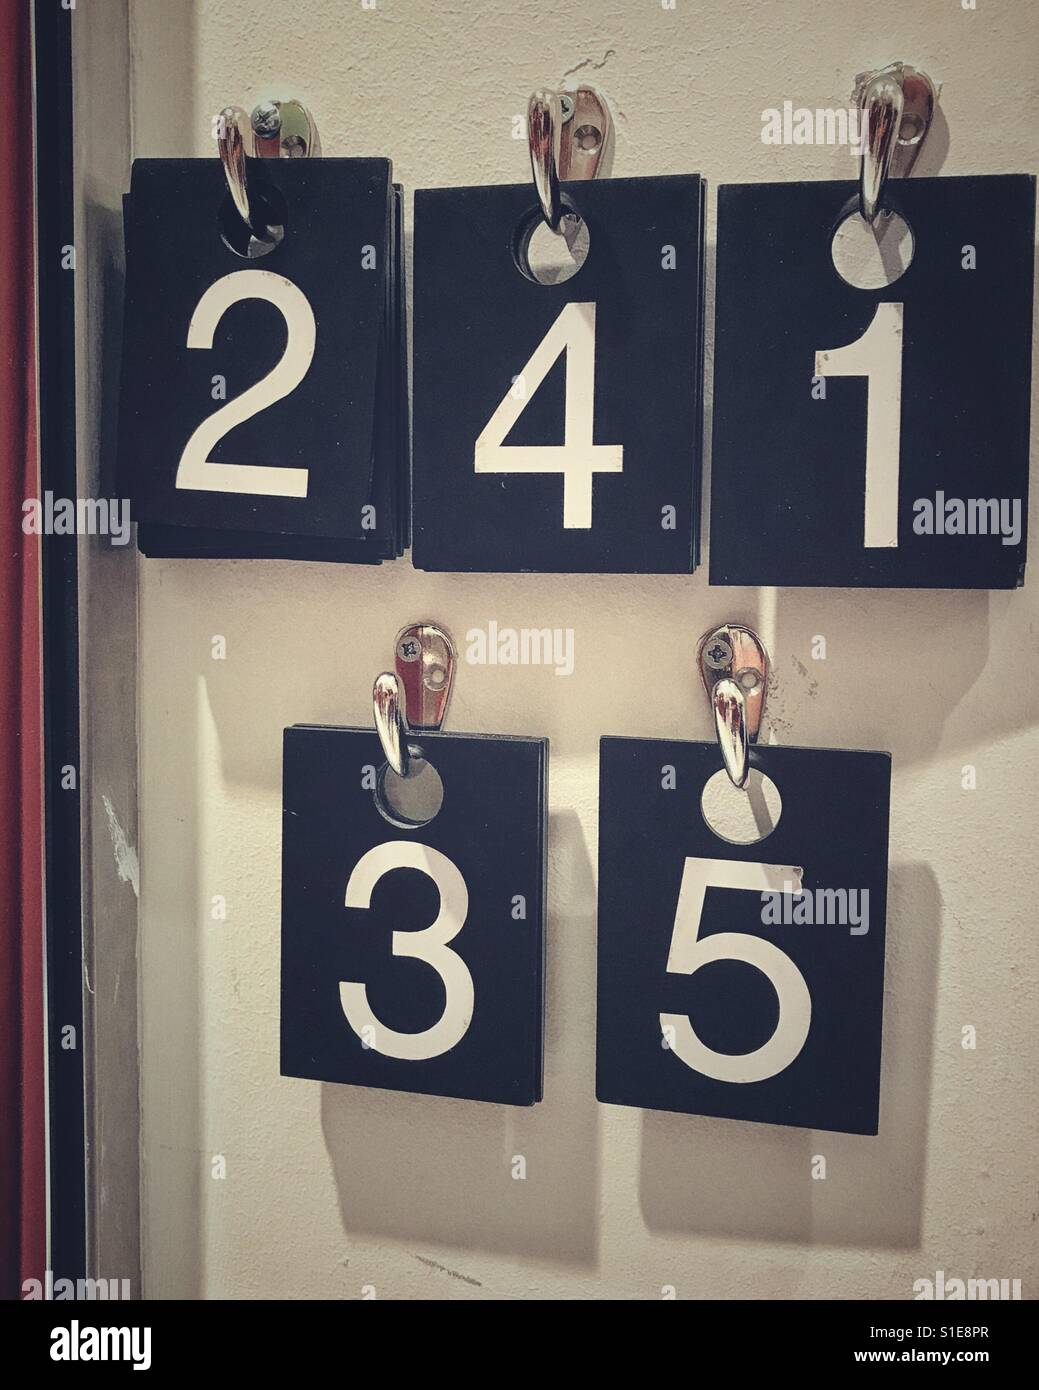 Fitting room numbers for items - Stock Image